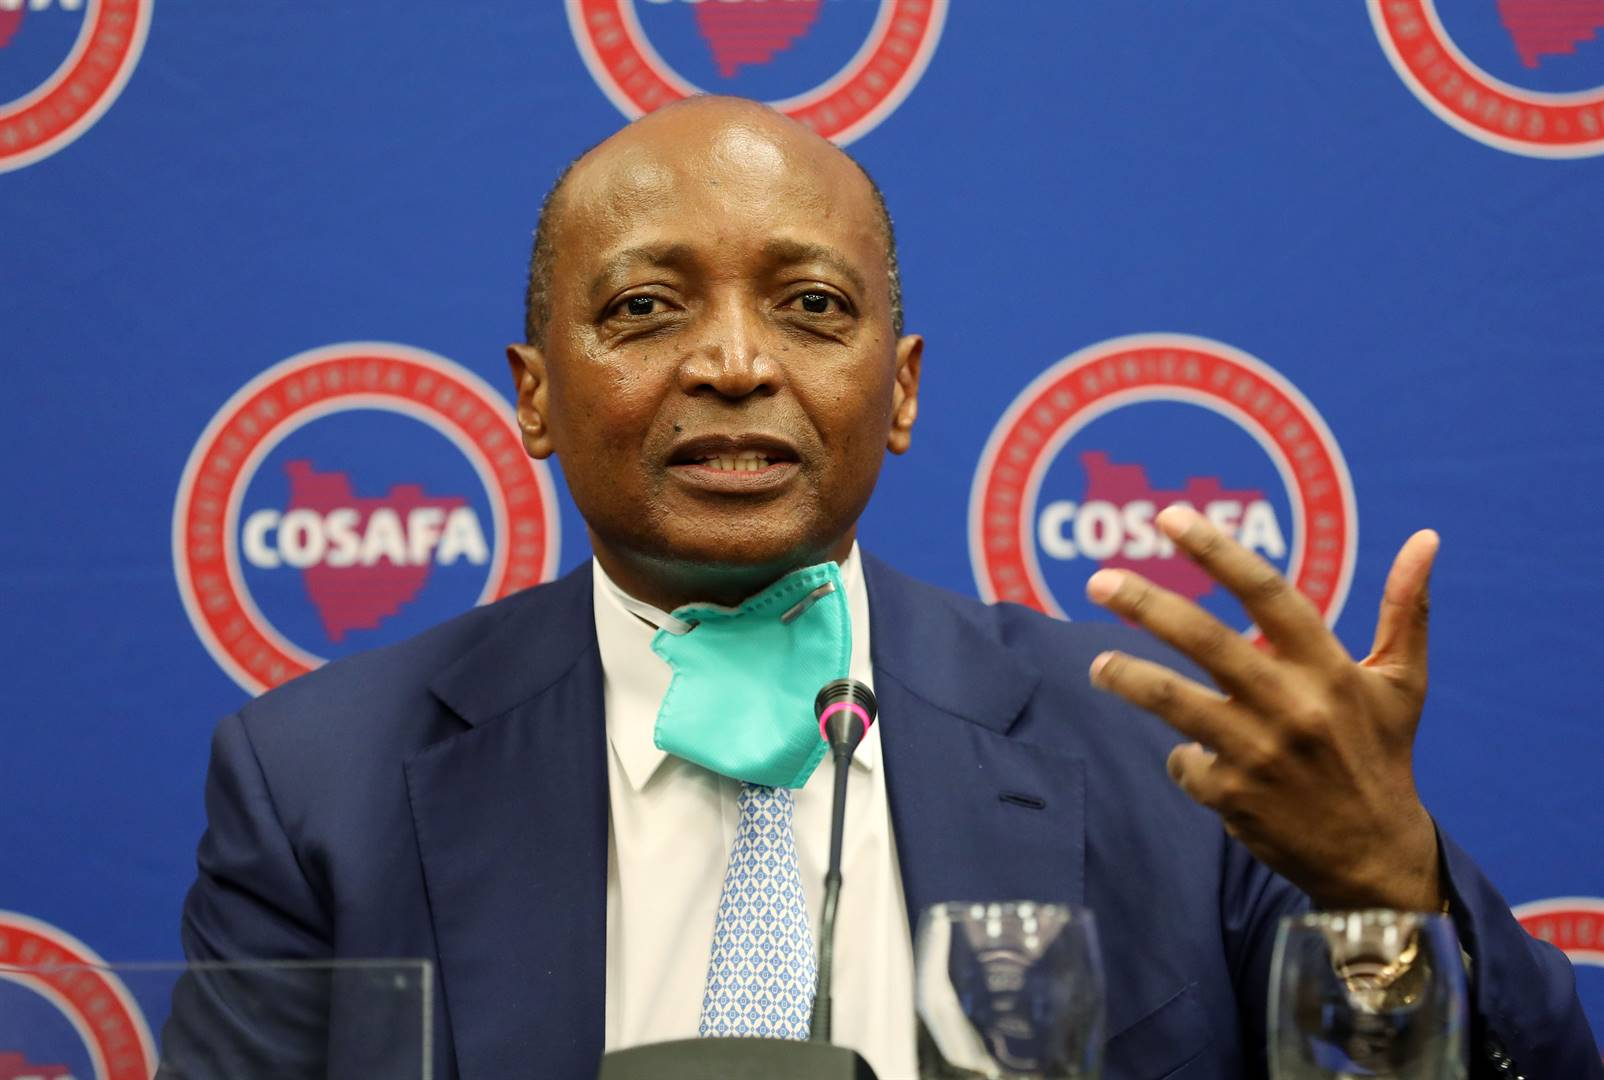 Patrice Motsepe during his guest appearance at the Cosafa annual general meeting in Sandton, Johannesburg, last month. Picture: Muzi Ntombela / BackpagePix